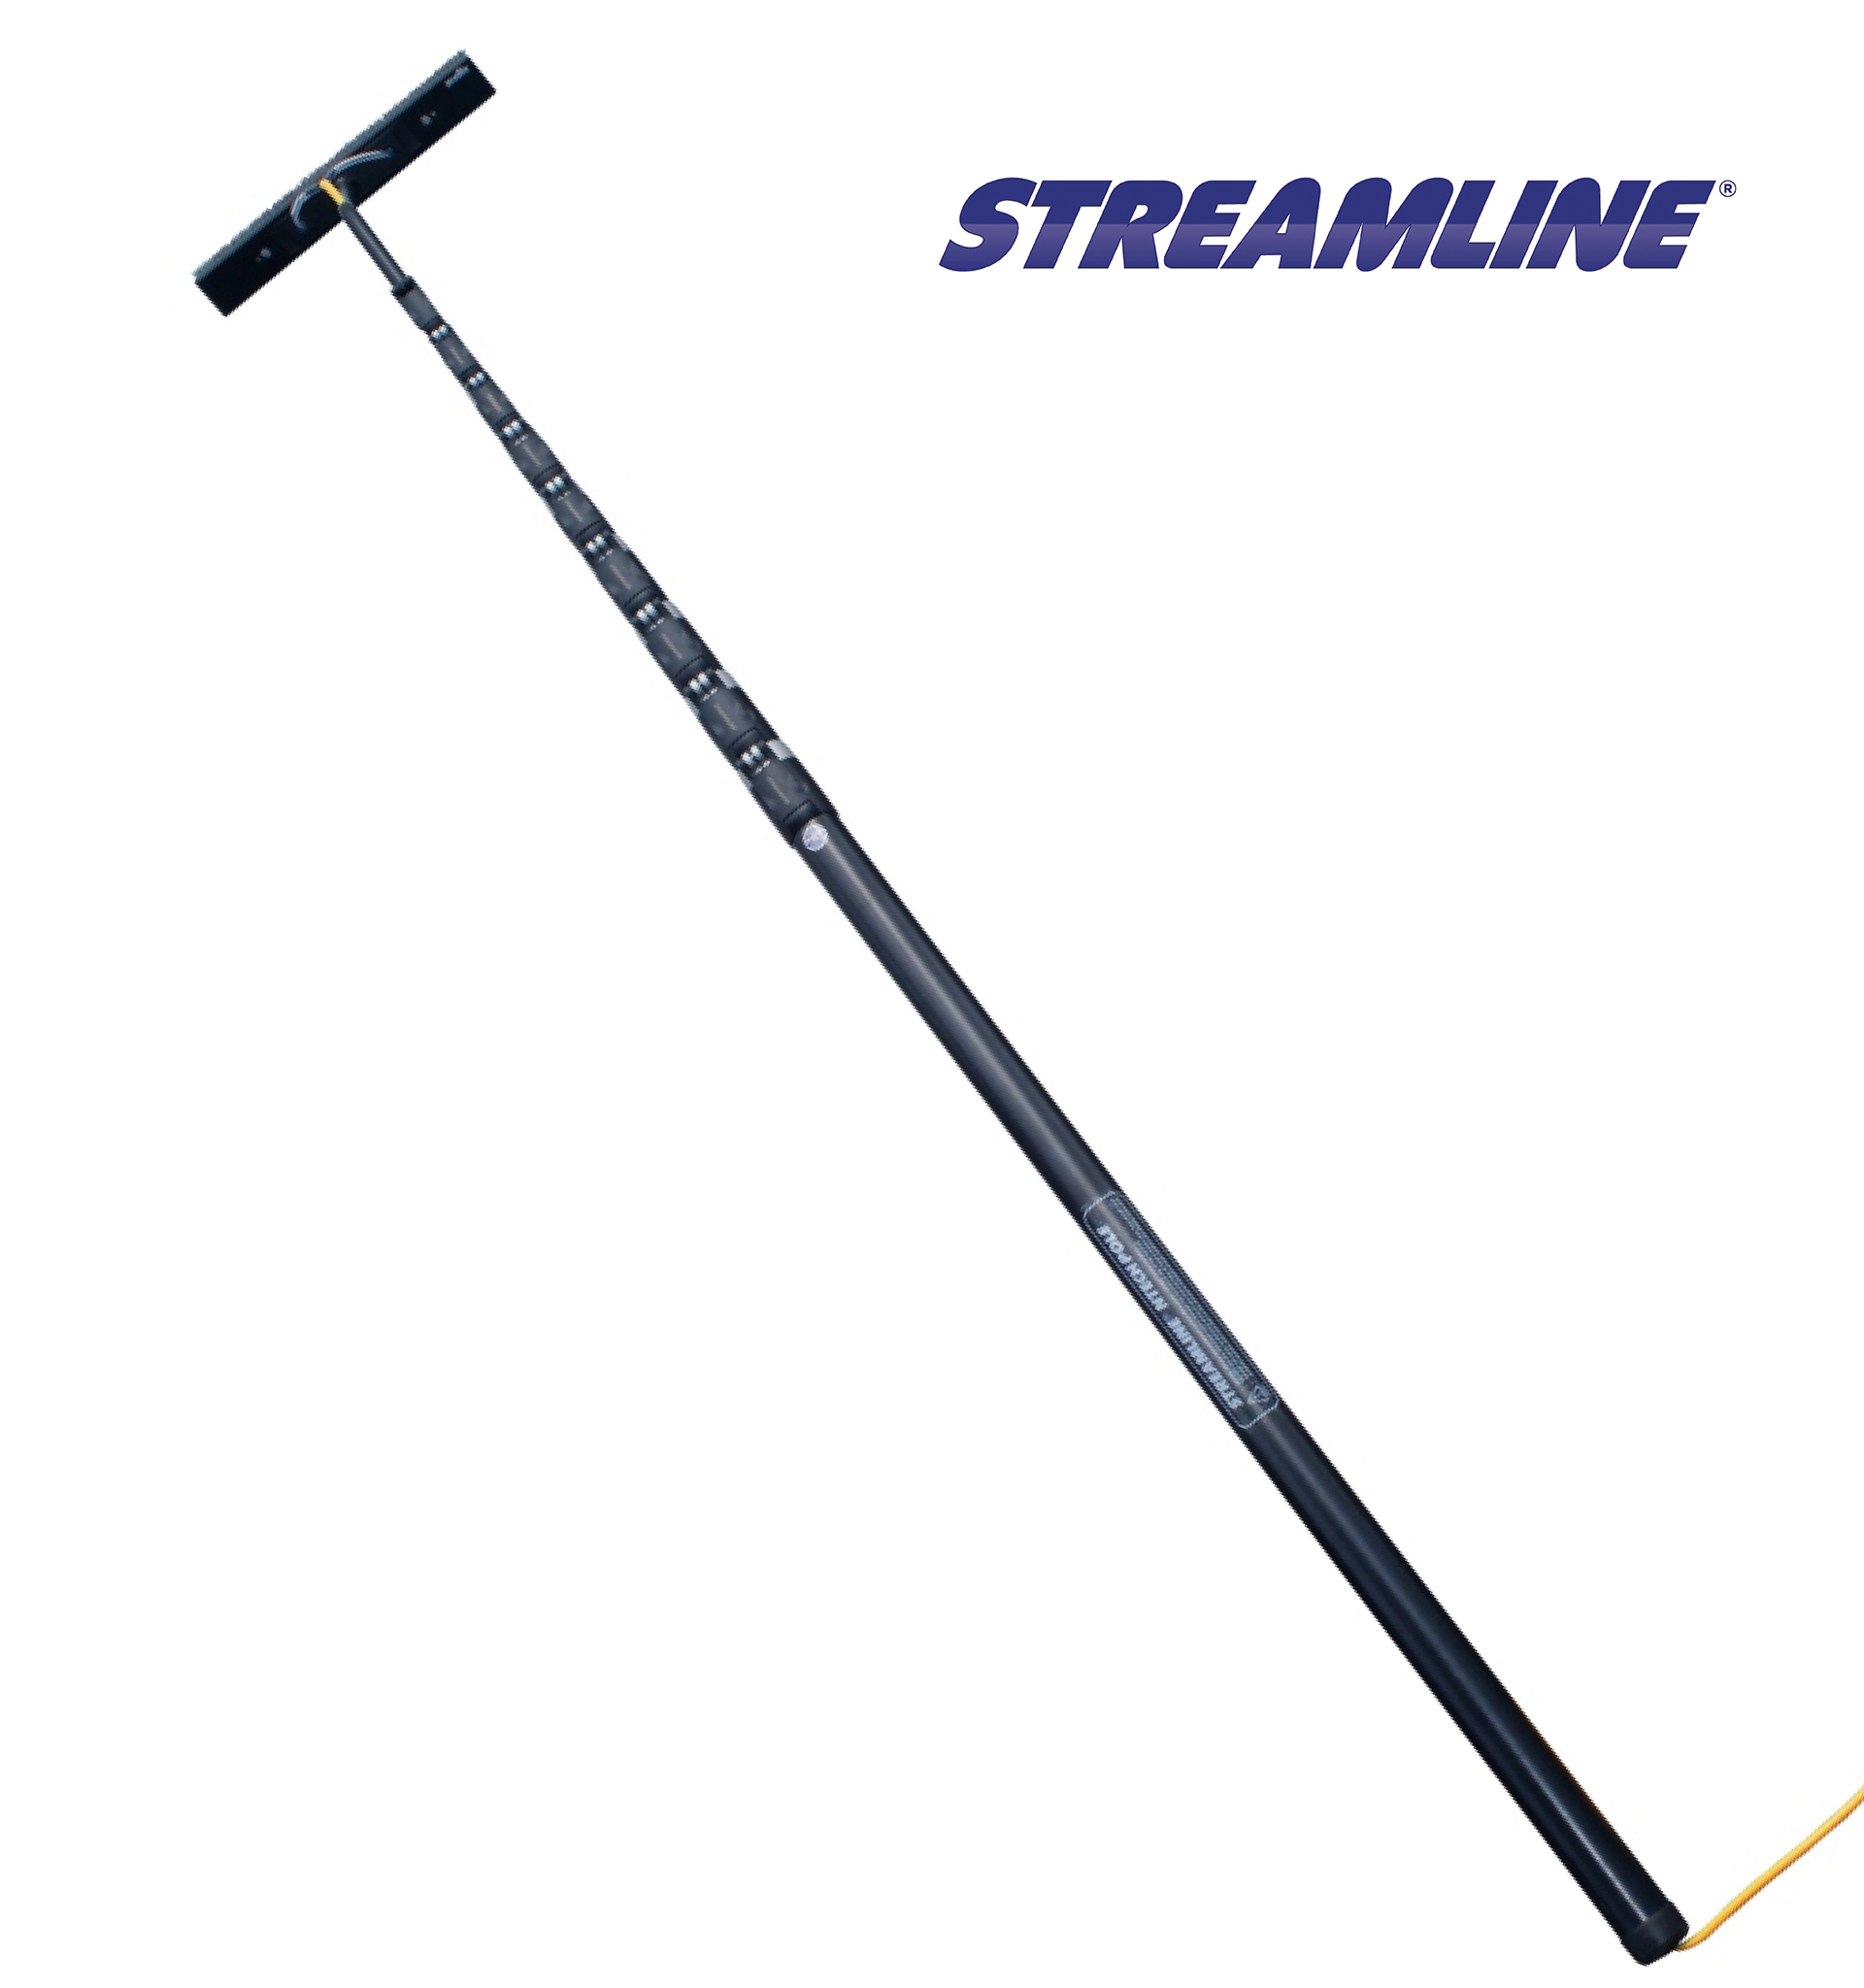 Streamline CXTEL 18 Metres (60′) 100% Carbon Fibre Telescopic Pole